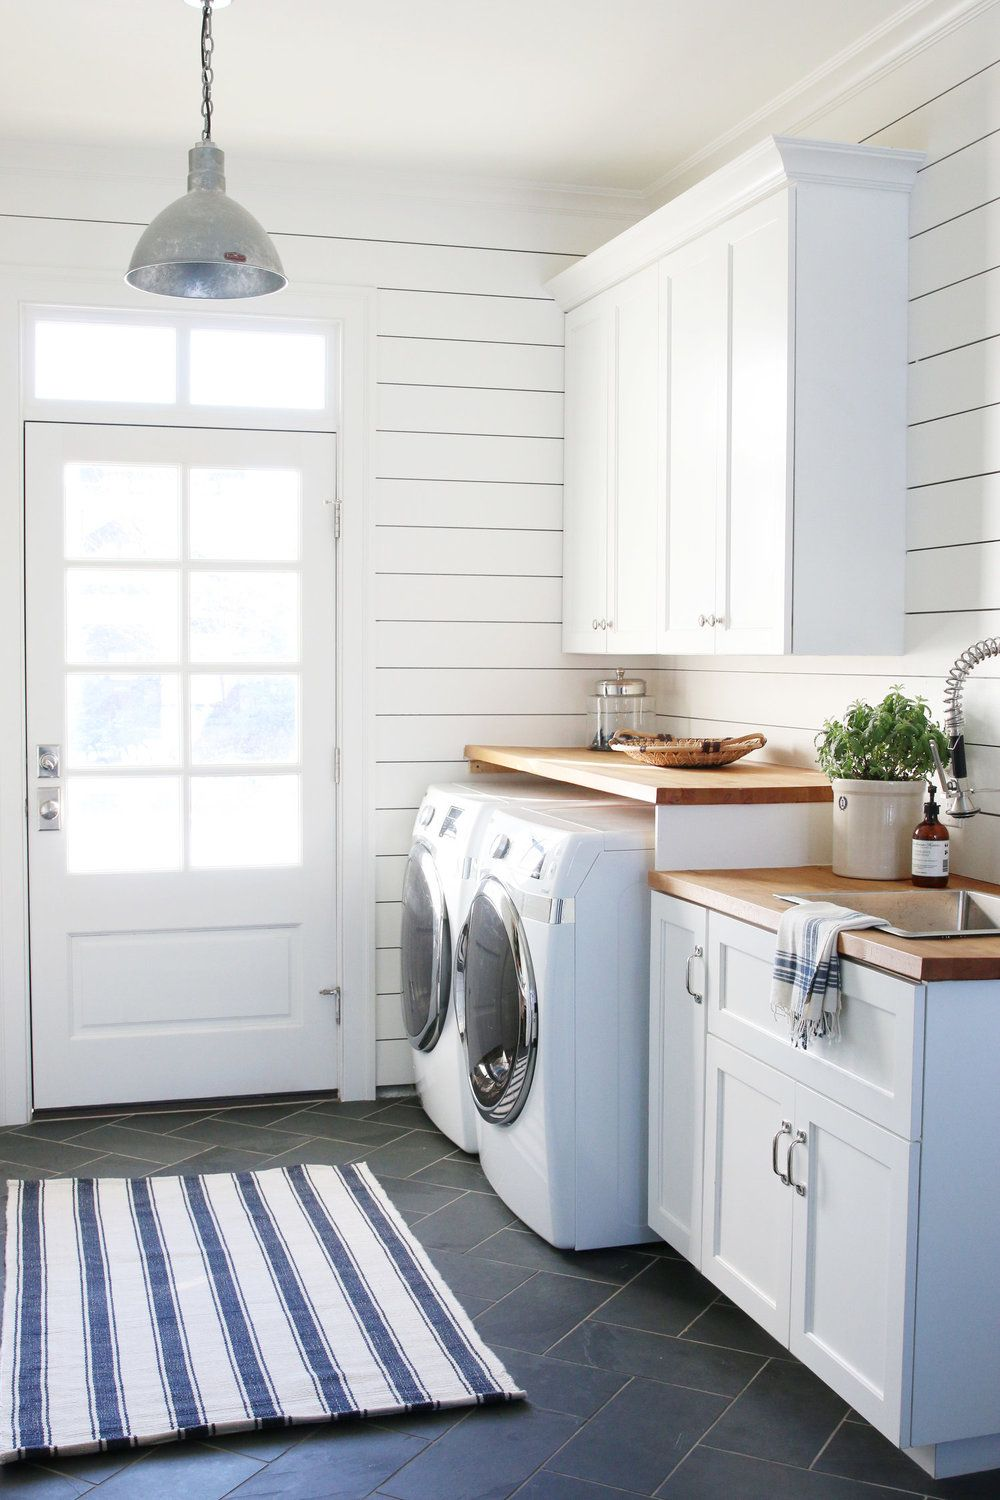 Magnificent Laundry Lovin Our Favorite Laundry Room Inspiration For Interior Design Ideas Gentotryabchikinfo